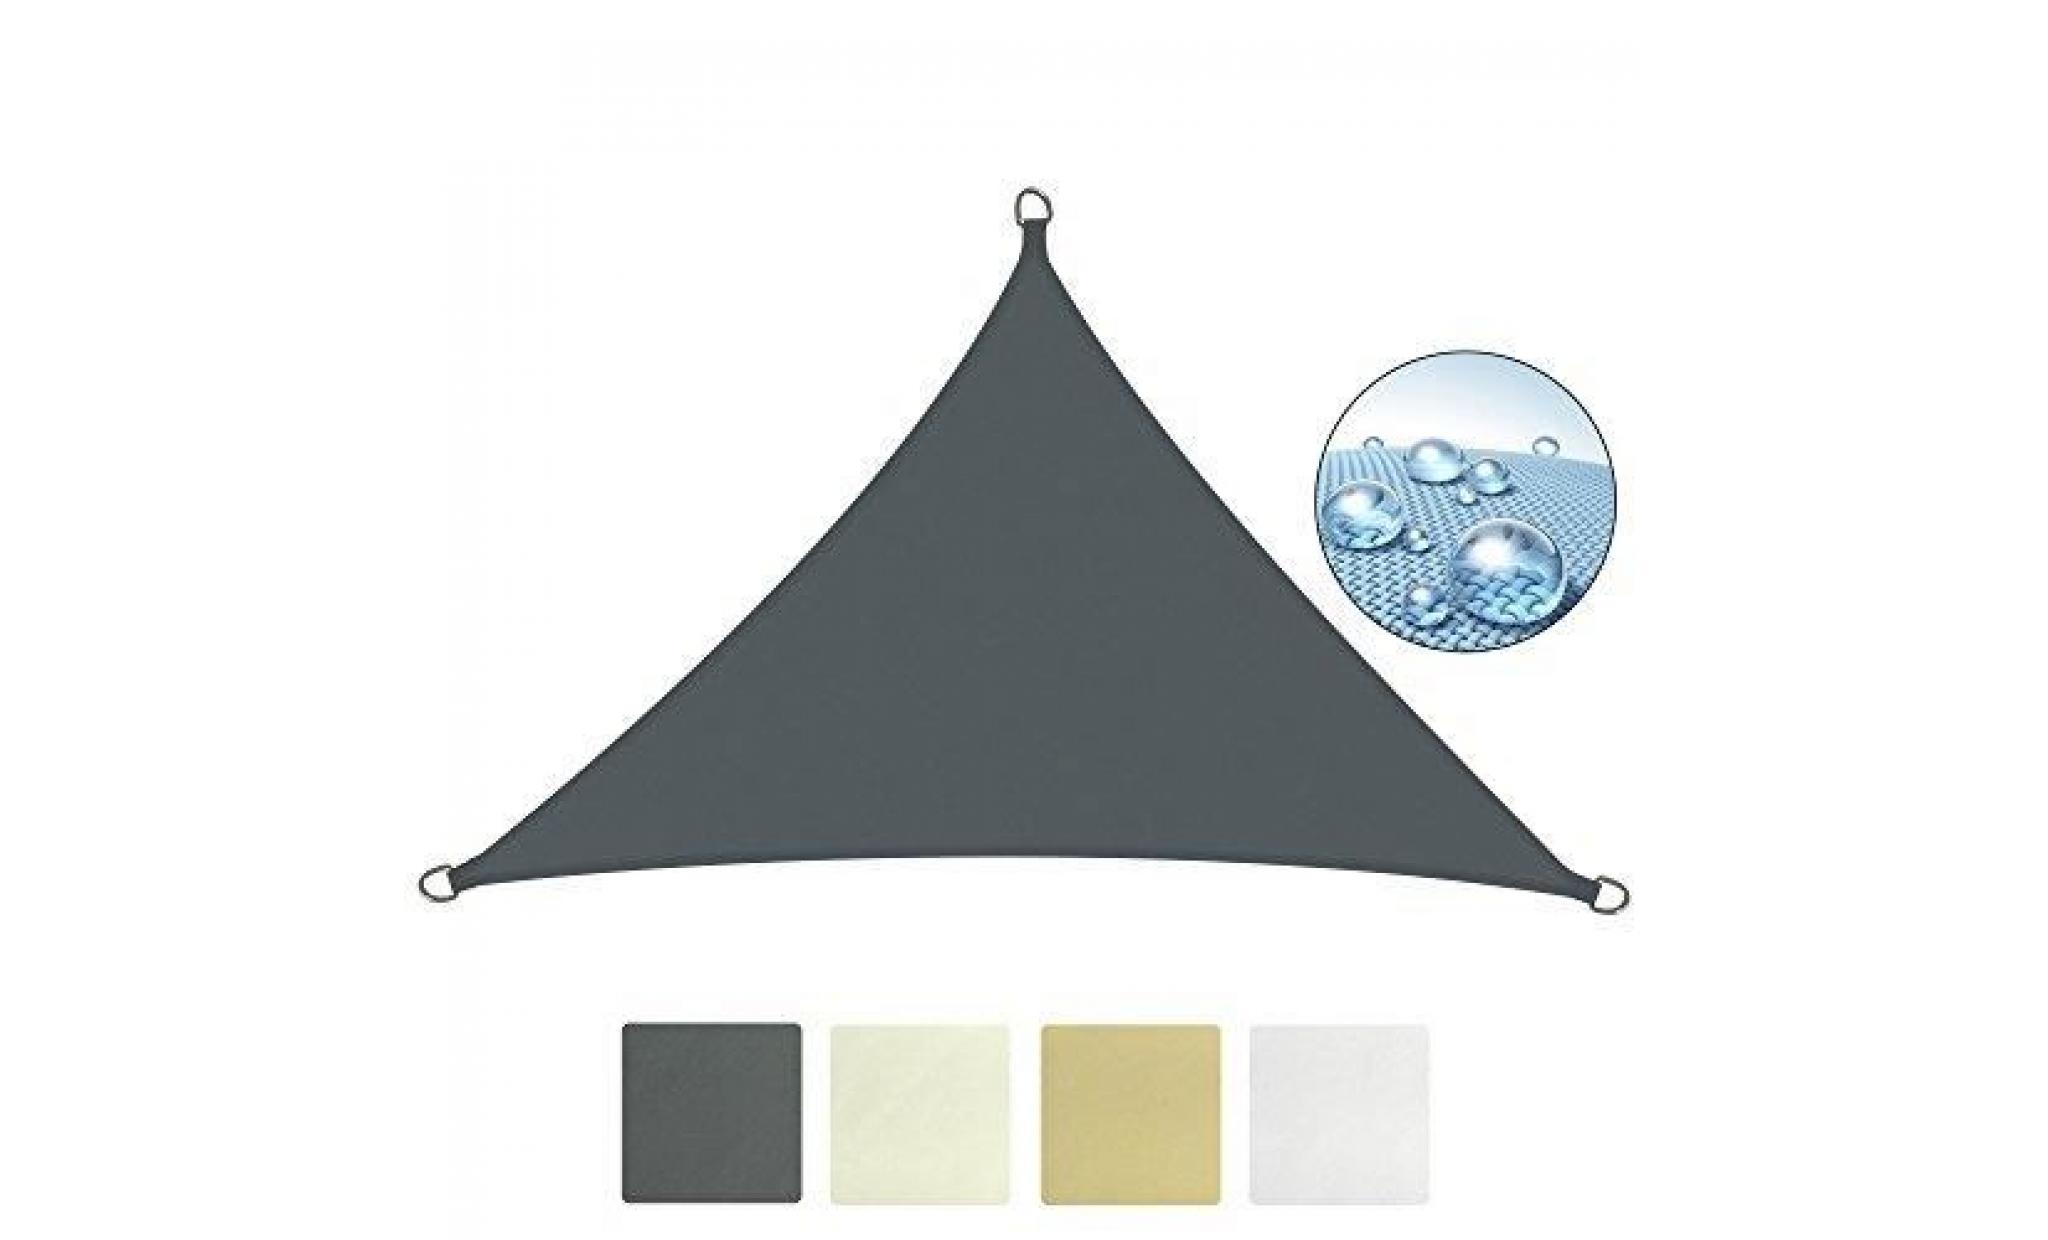 sol royal voile d'ombrage 600x420x420cm anthracite   solvision hs9   hdpe tissus respirant   protection solaire et uv